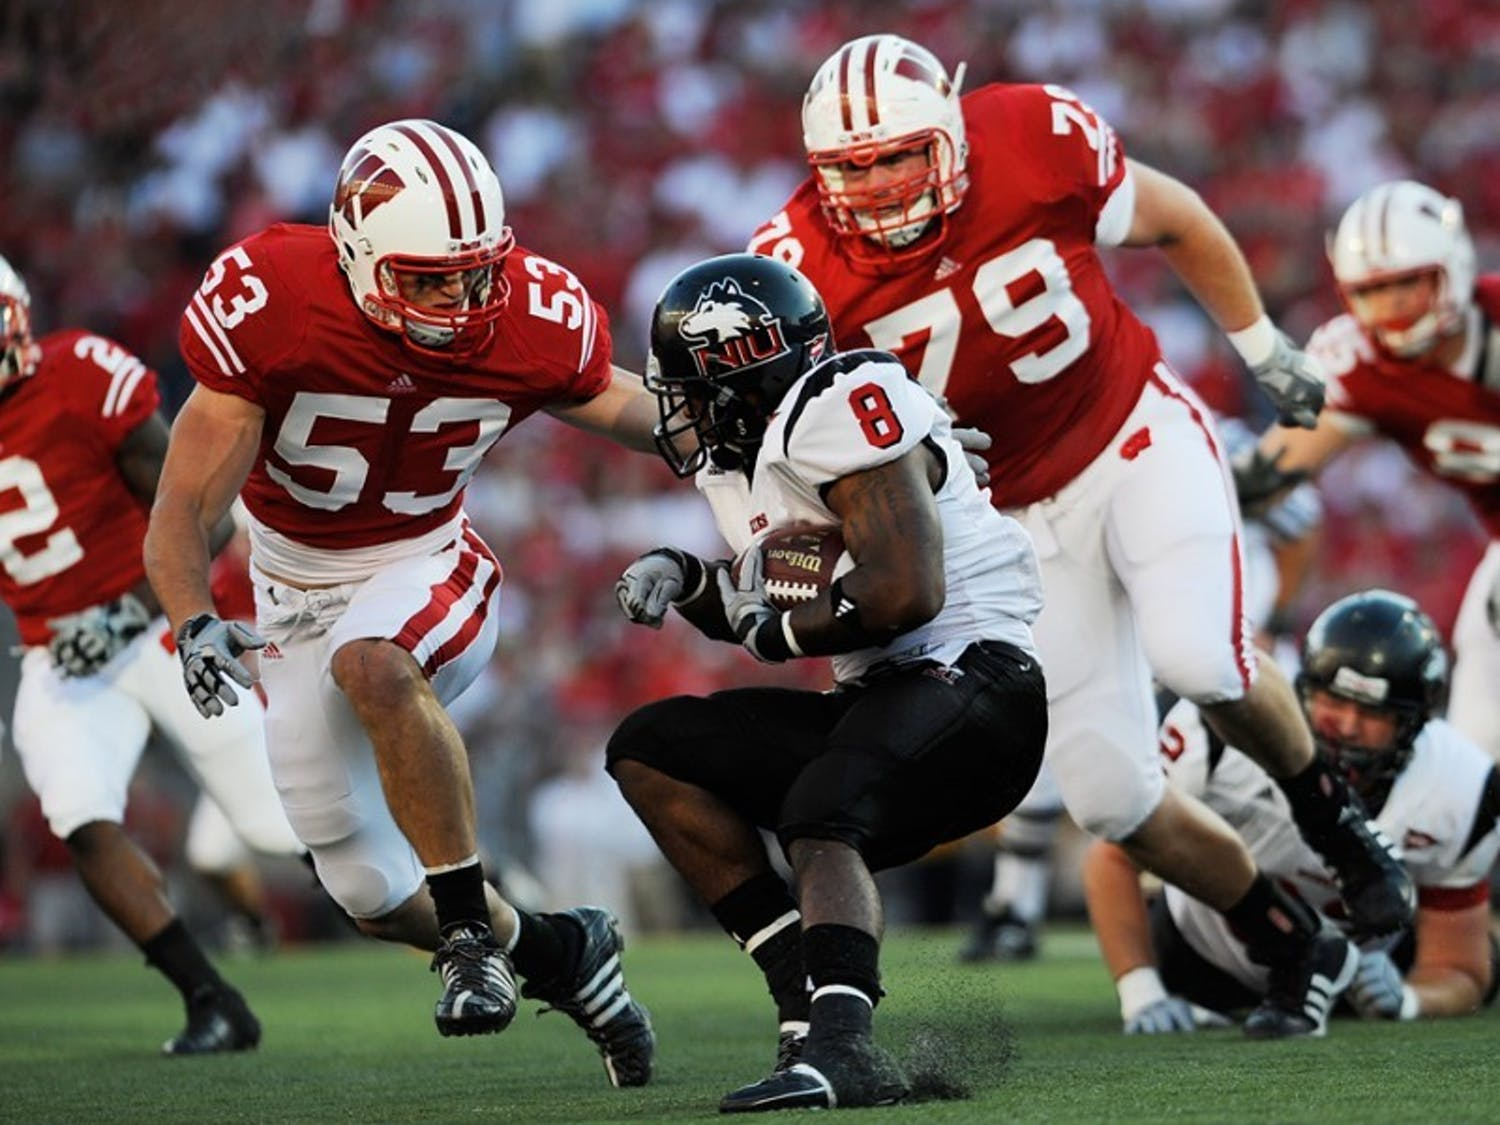 Badgers must count on youthful linebackers